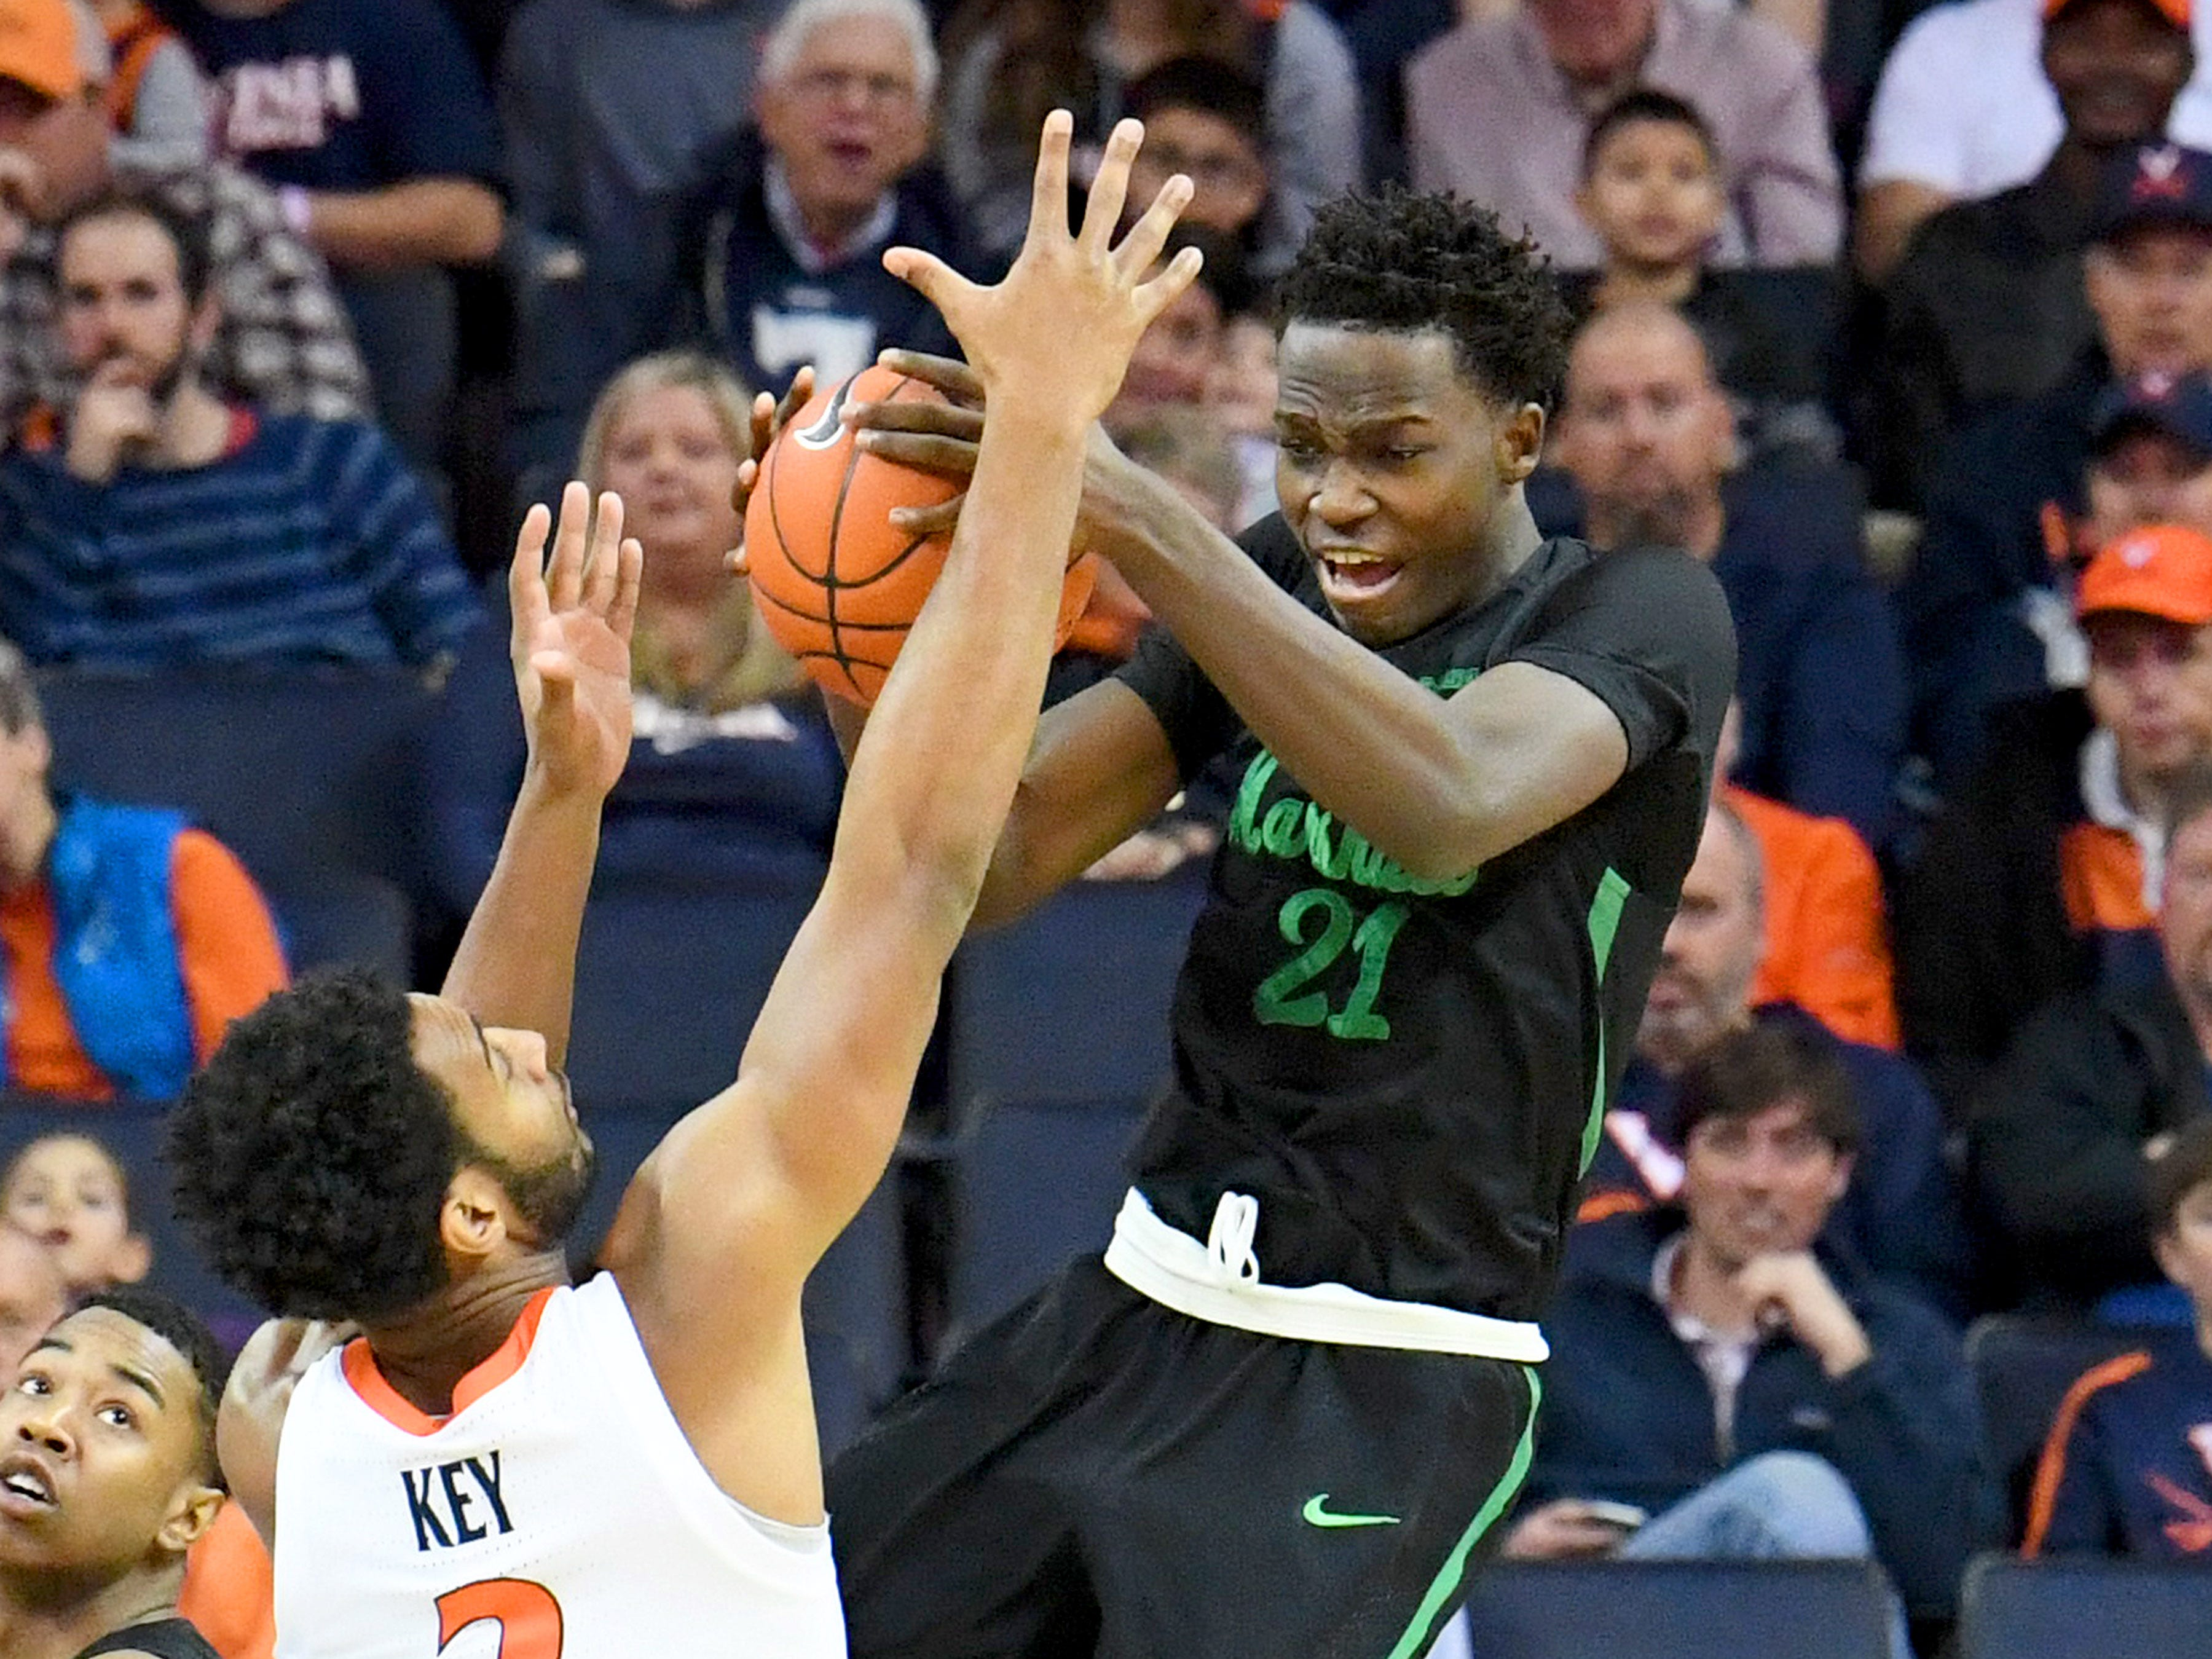 Marshall's Darius George, former R.E. Lee star, snatches the rebound after going high during their game against University of Virginia, played at the John Paul Jones Arena on Dec. 31, 2016.